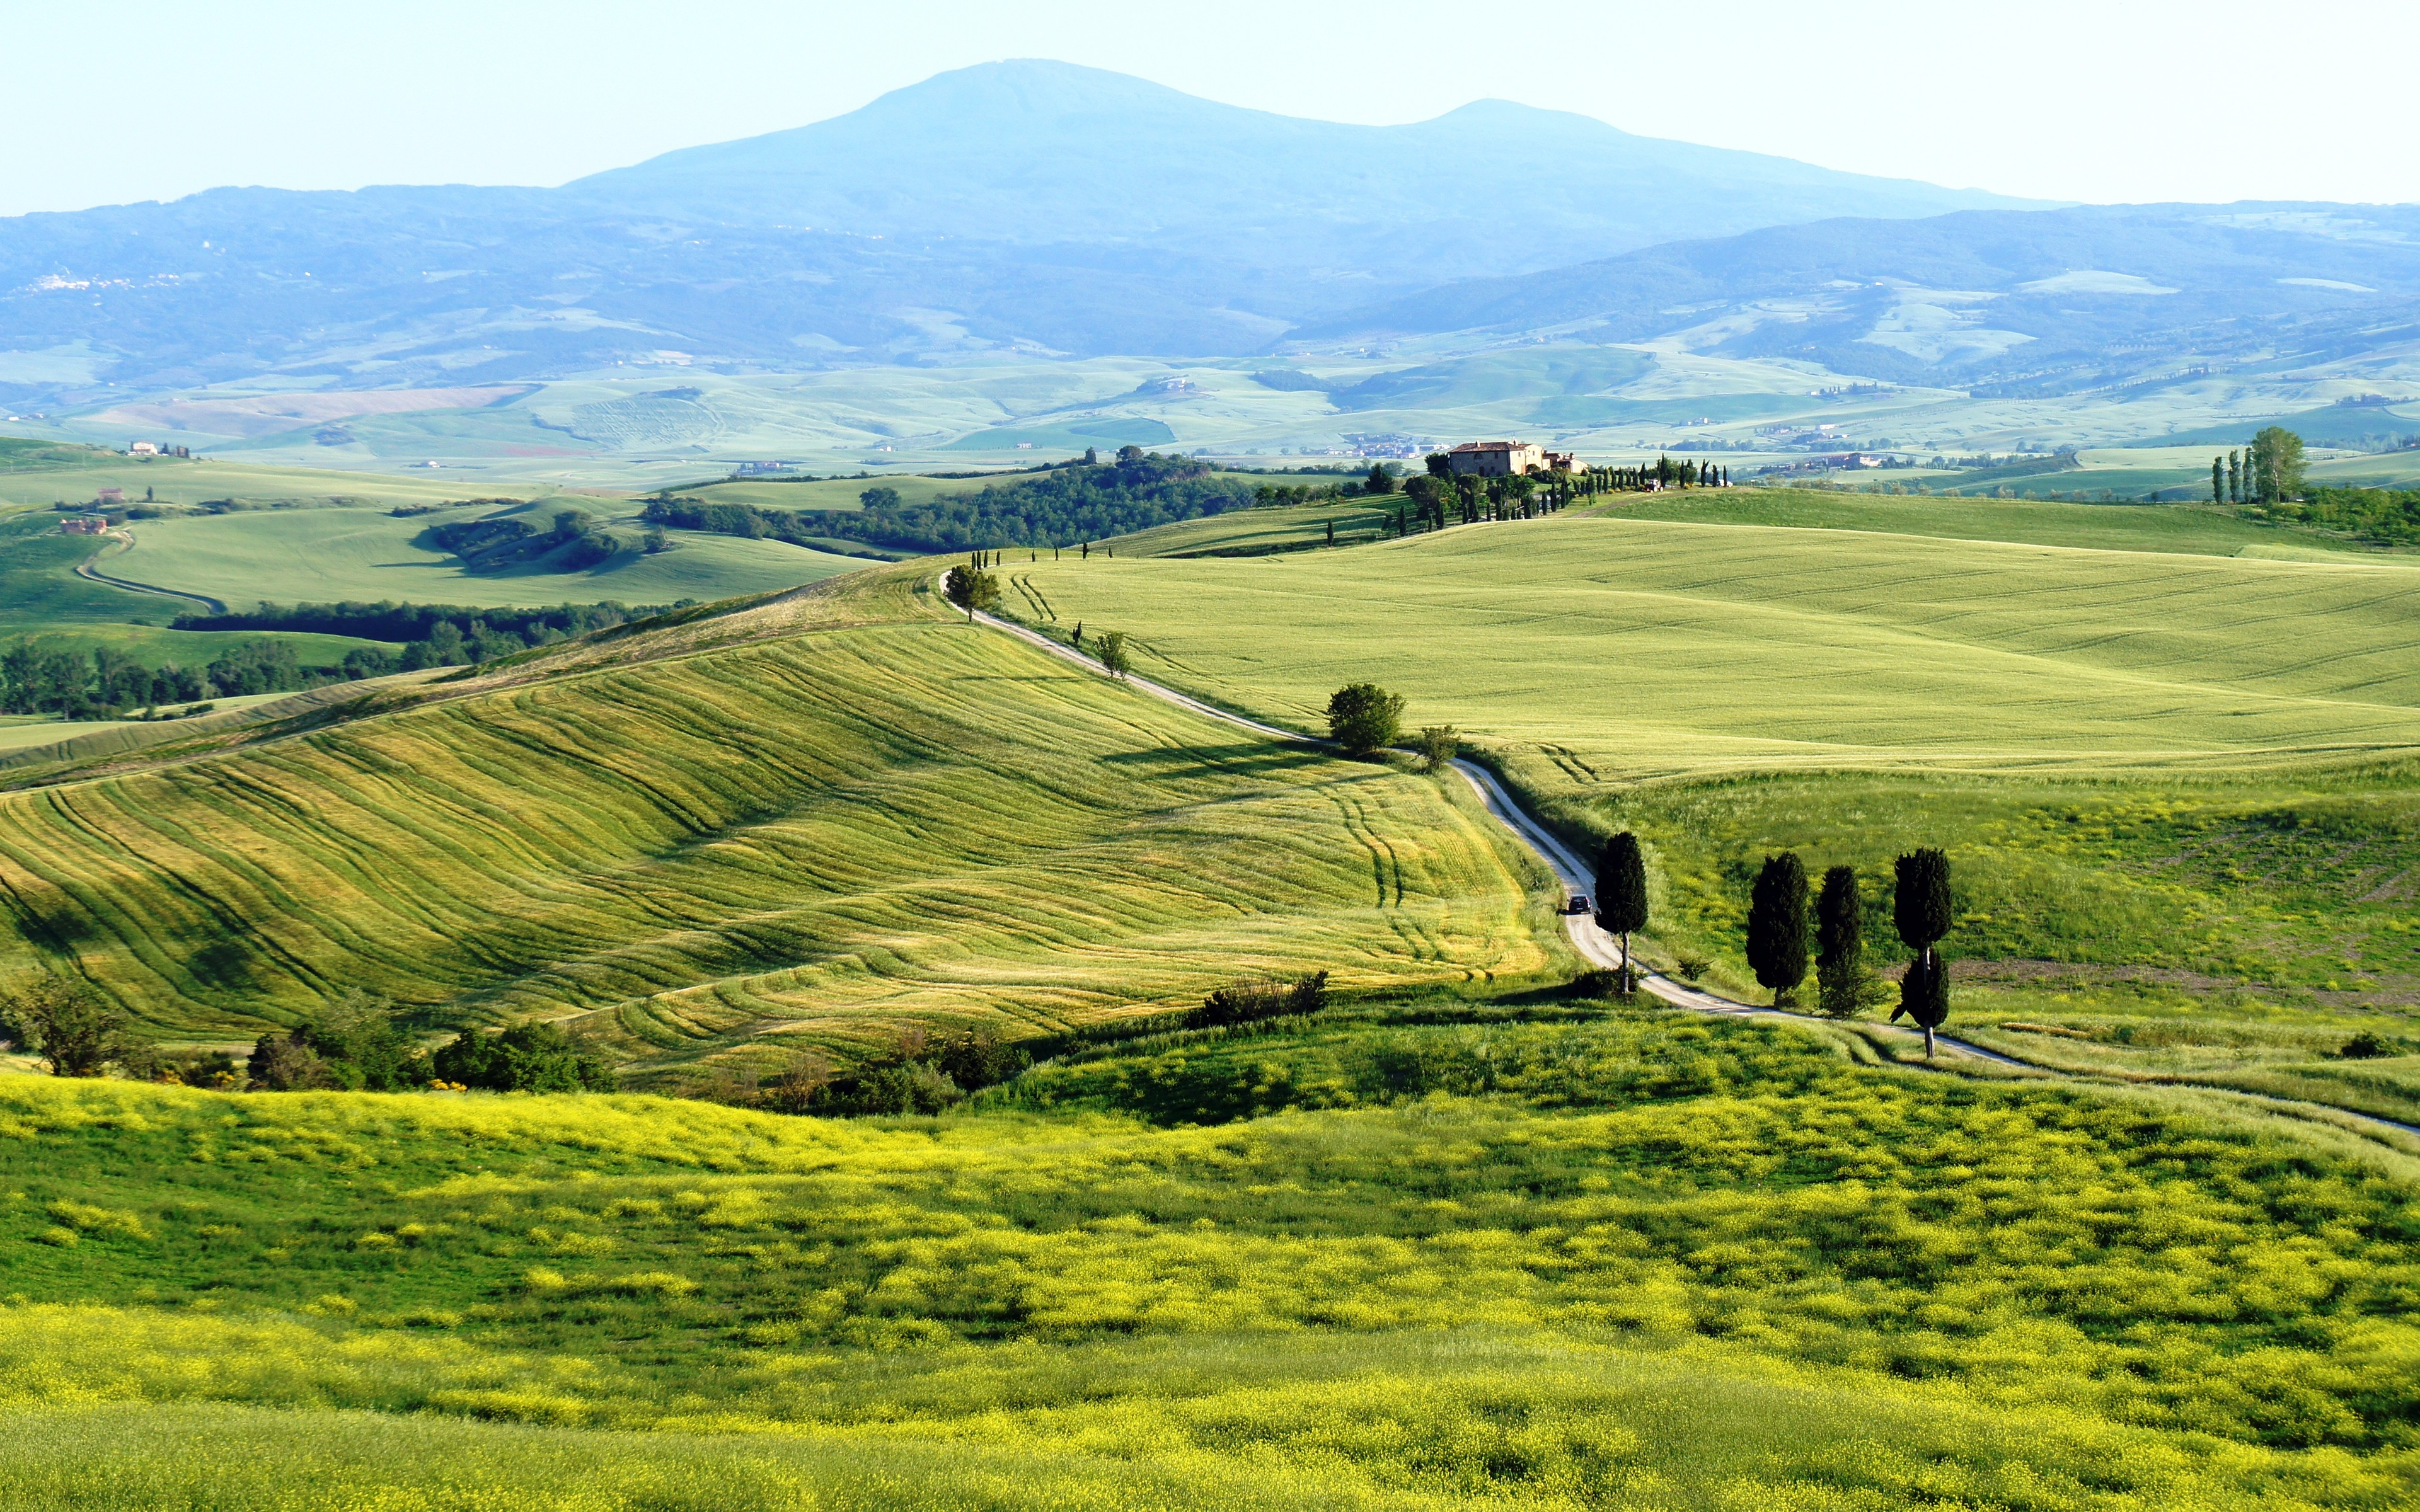 Daily Wallpaper: Tuscany, Italy   I Like To Waste My Time